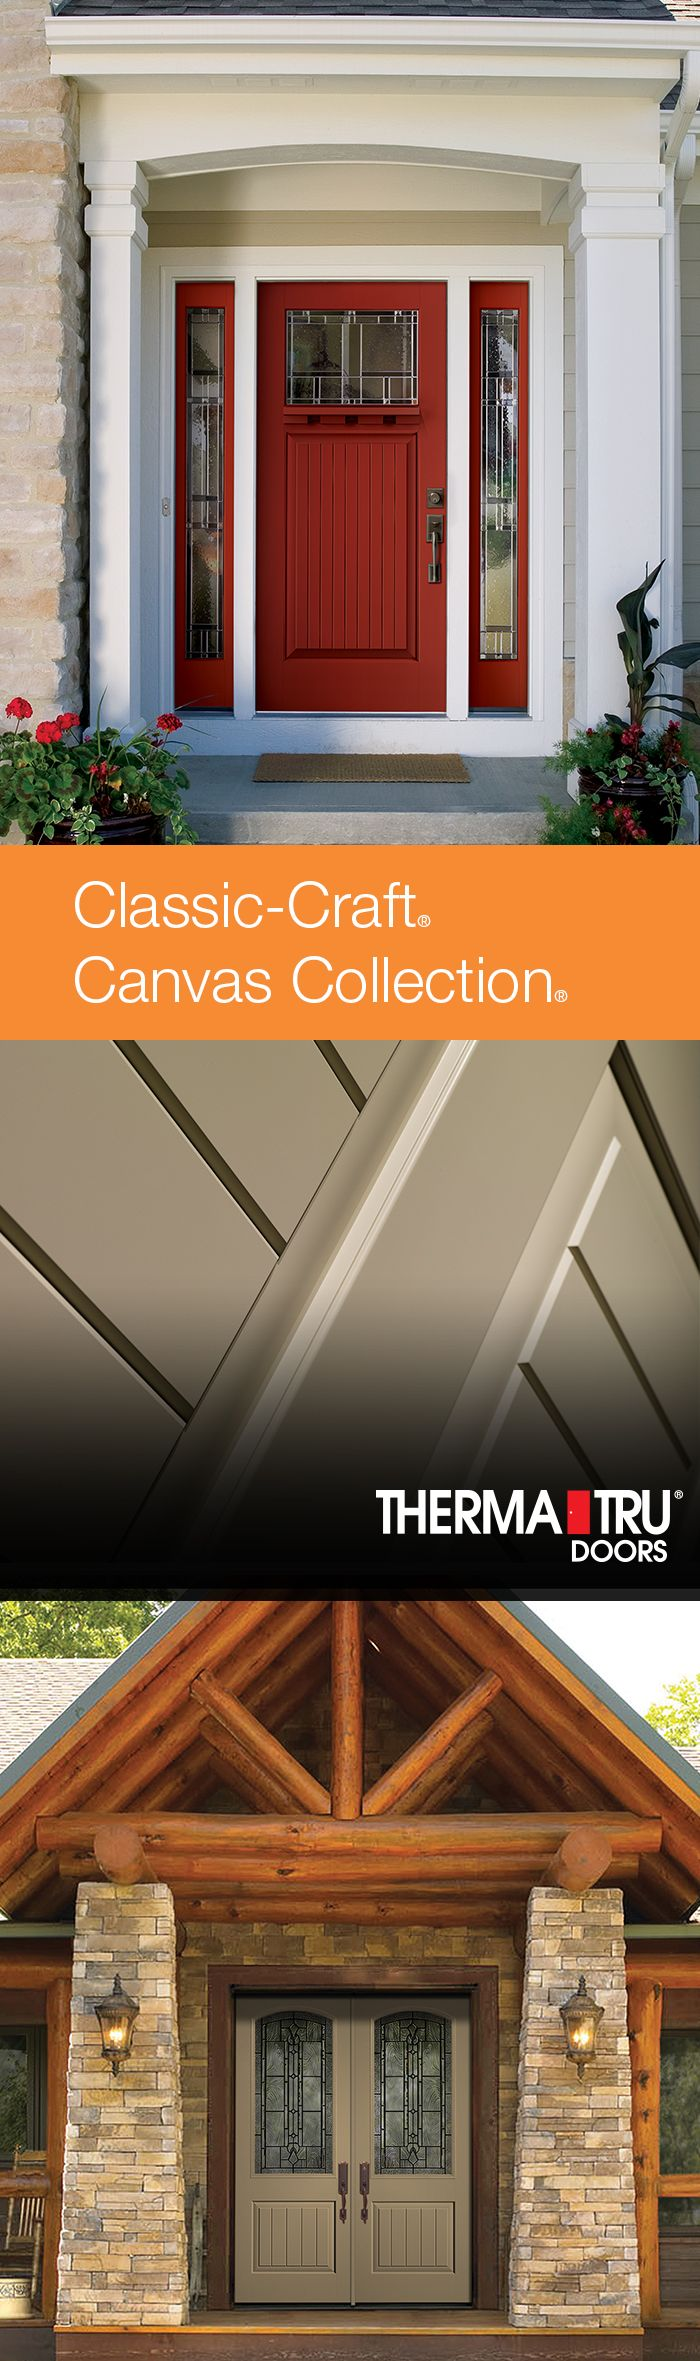 The Classic-Craft Canvas Collection features premium fiberglass doors that create a sleek, modern entryway with smooth paintable surfaces for virtually unlimited color options both inside and out.